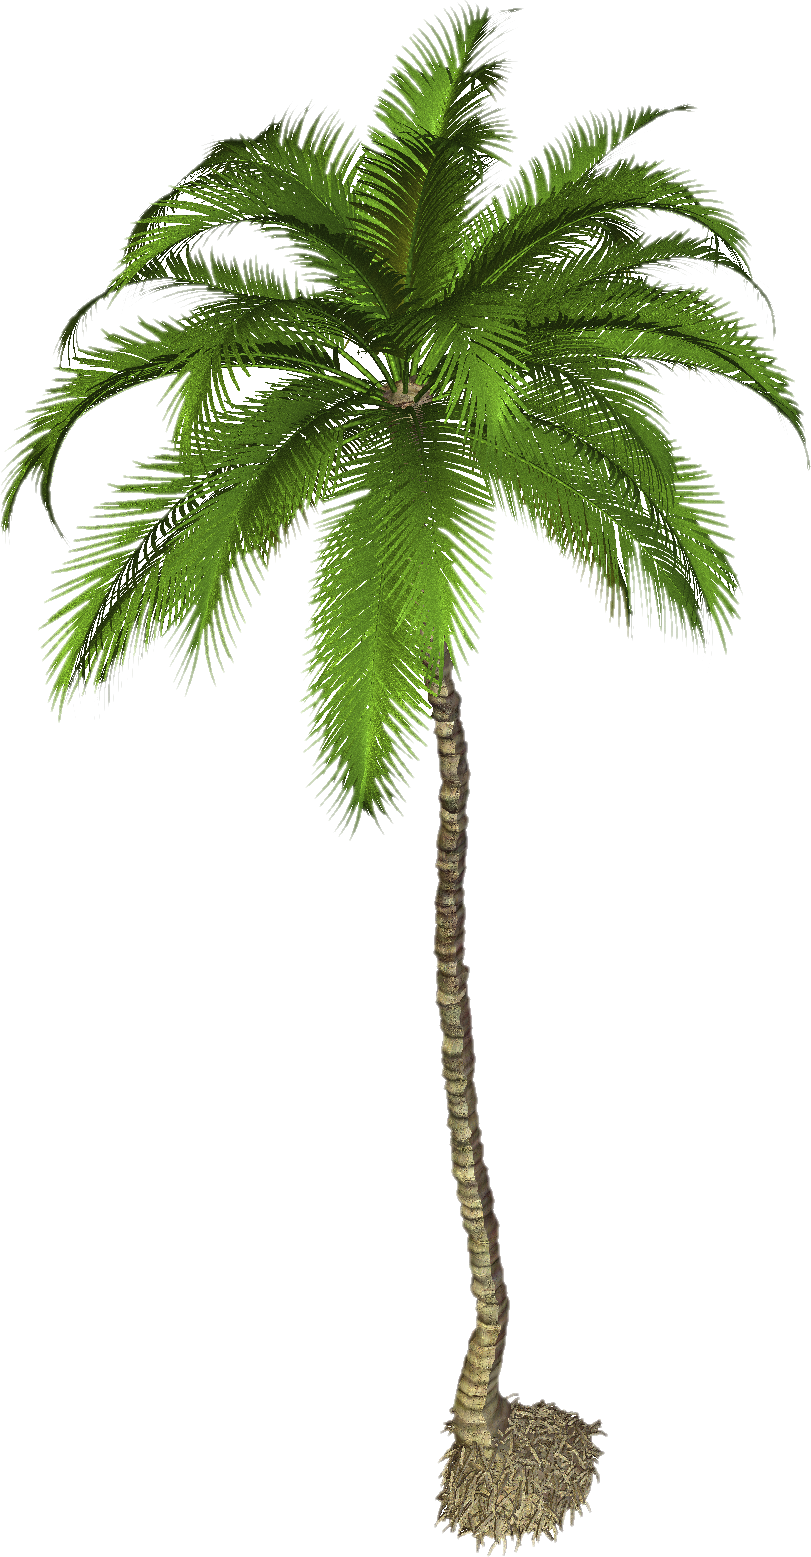 Pigmy palm png. Cp paurb india date